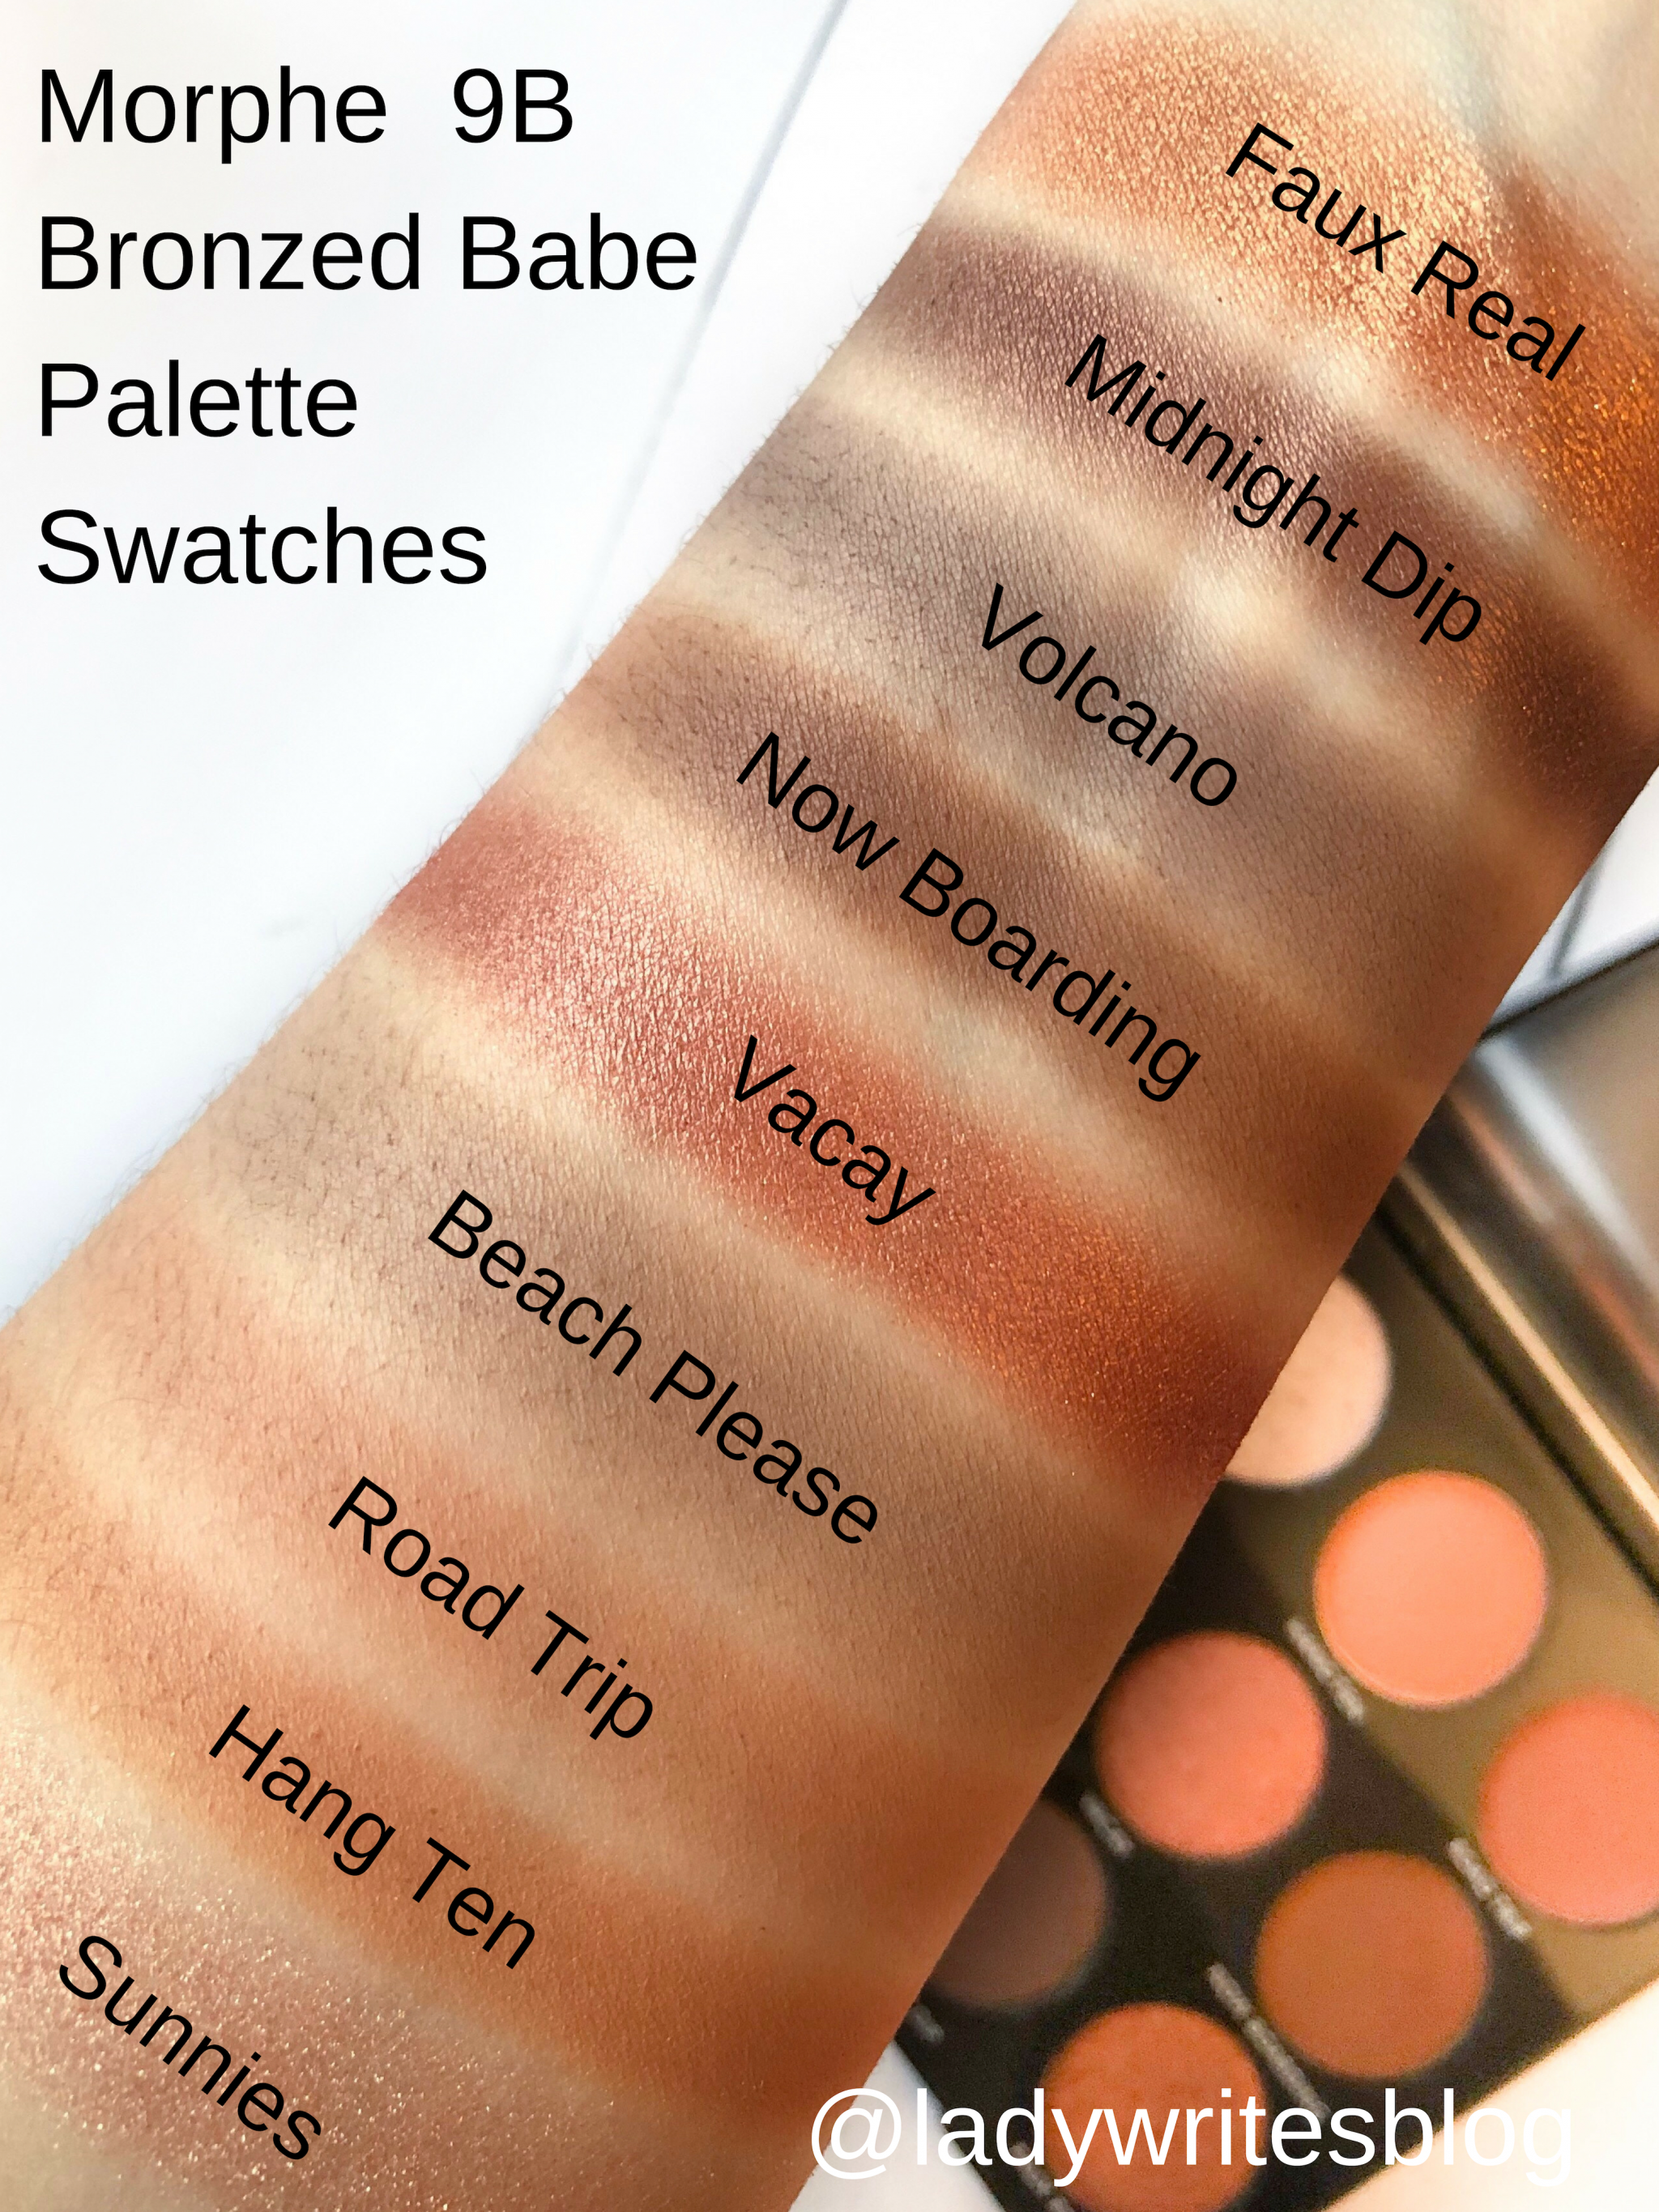 Morphe 9B Bronzed Babe Palette Swatches